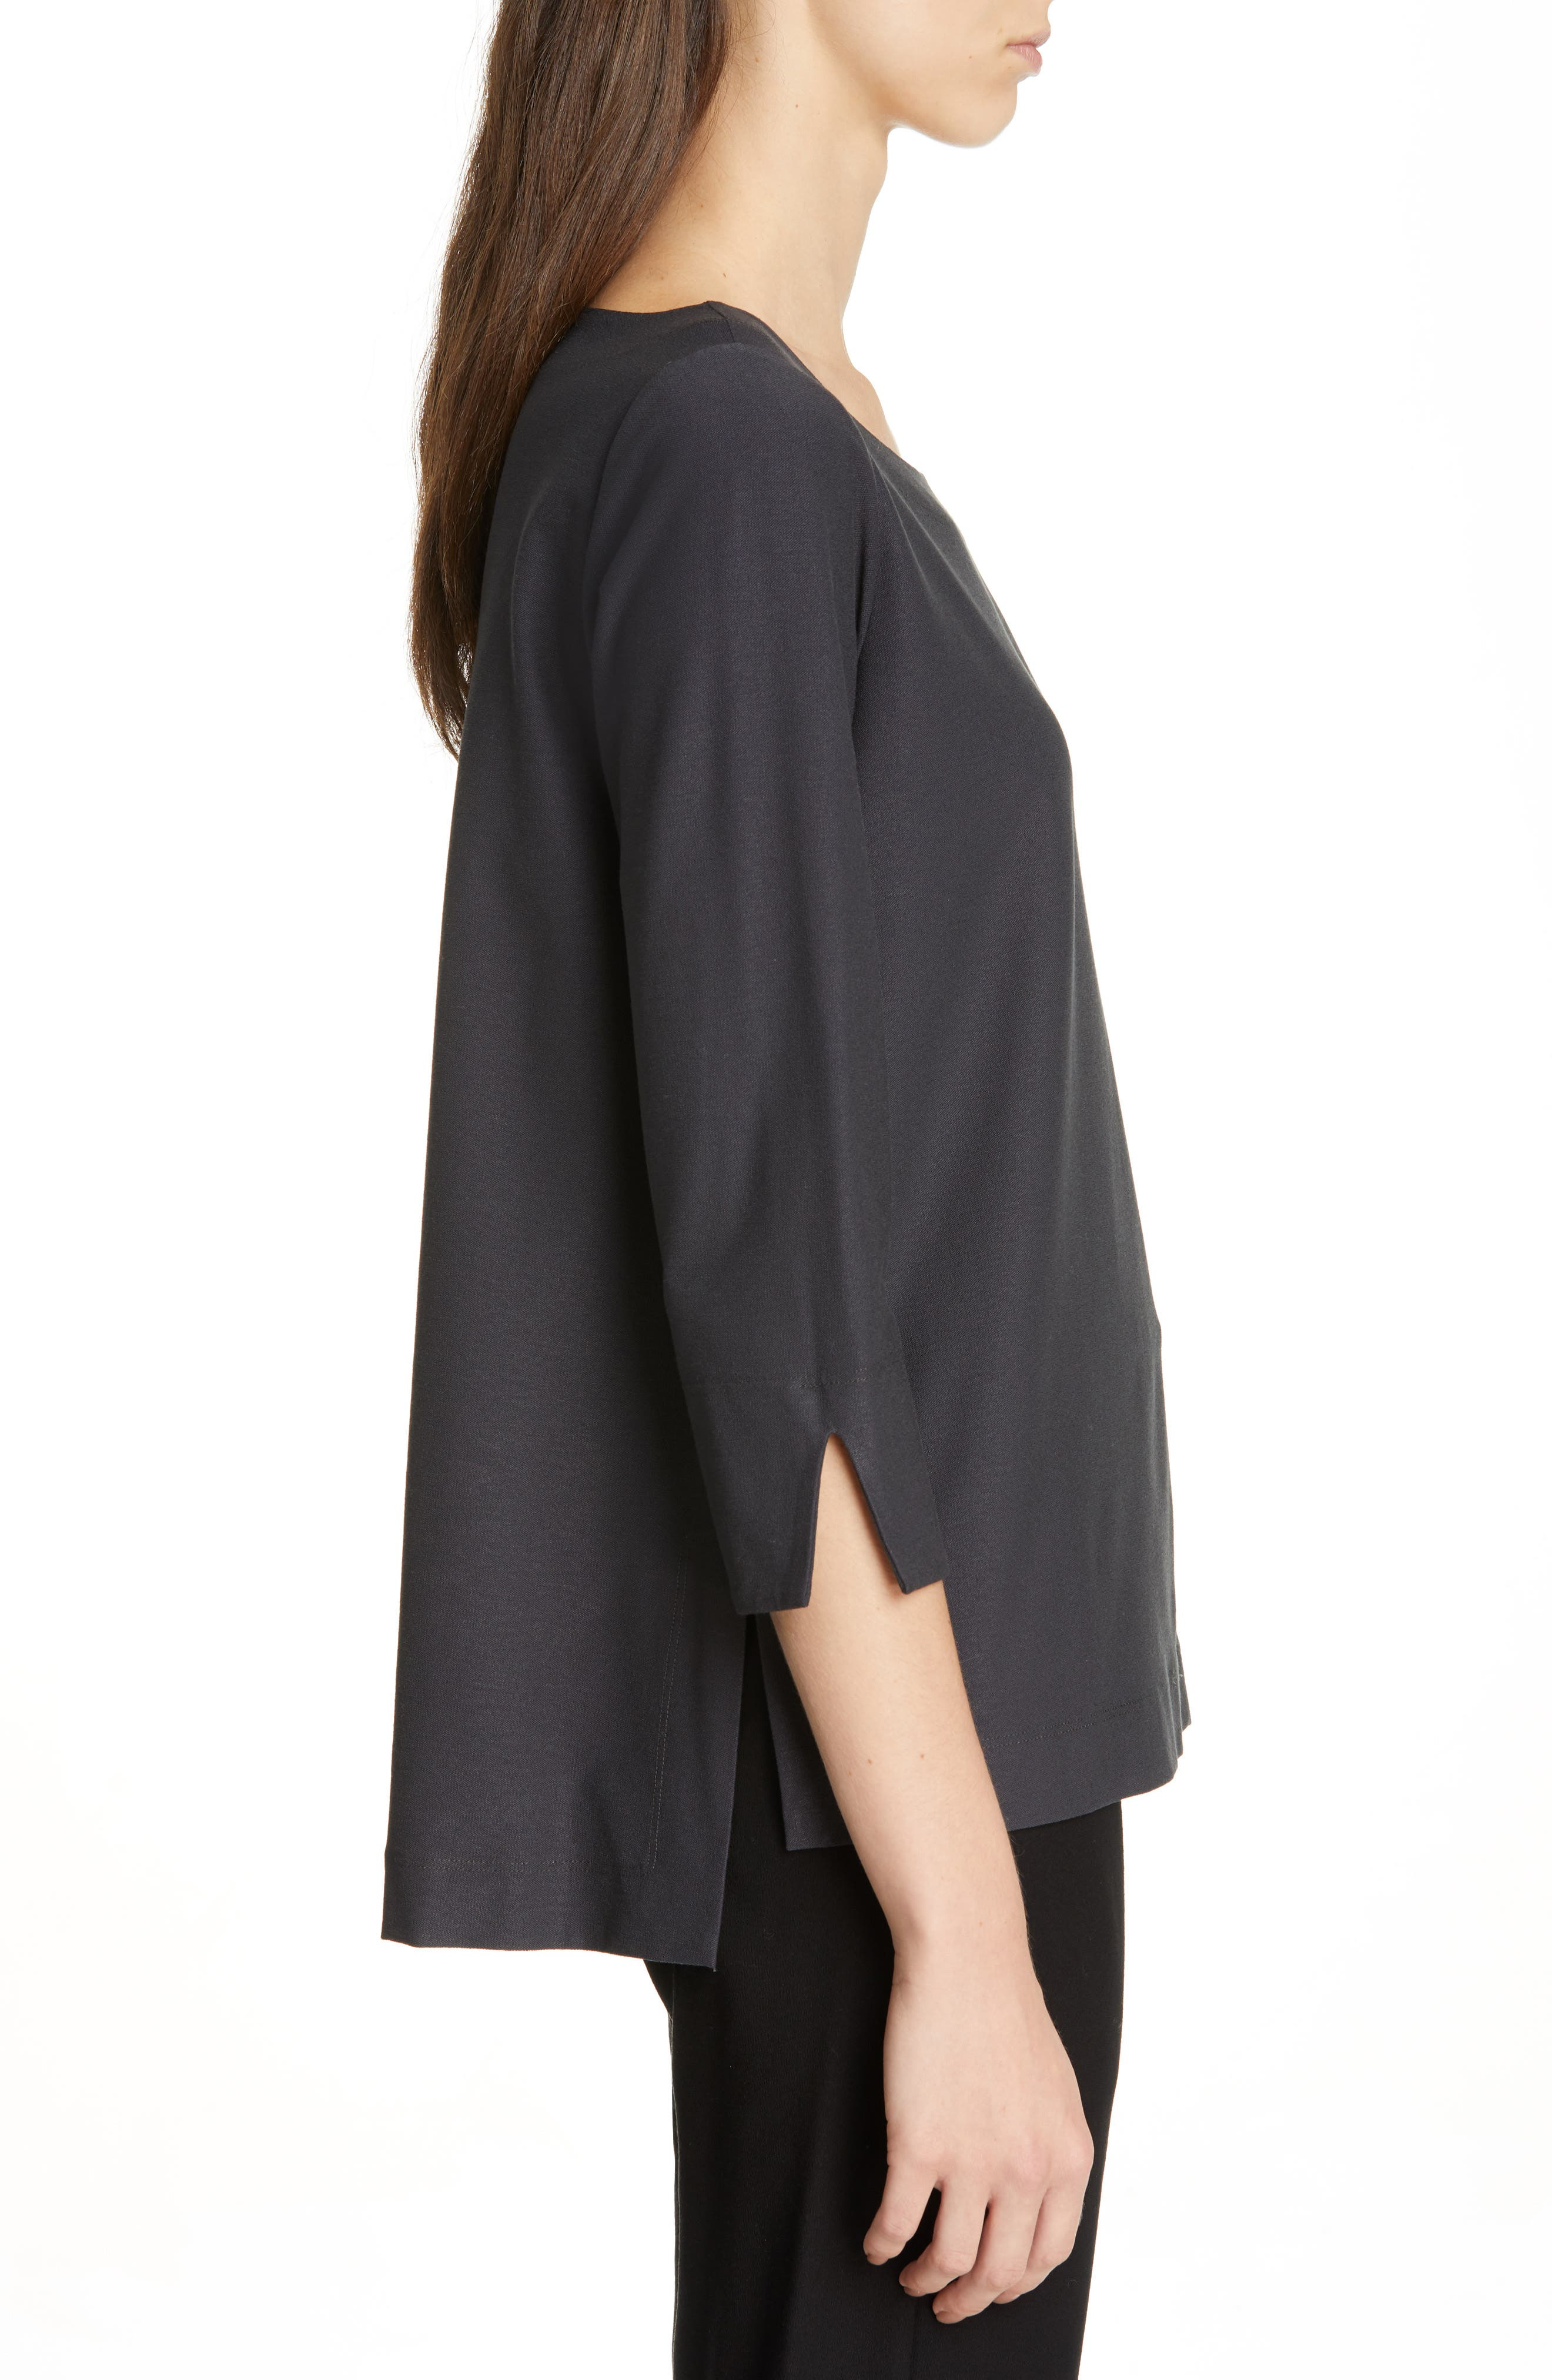 EILEEN FISHER,                             Boxy Jersey Top,                             Alternate thumbnail 3, color,                             GRAPHITE